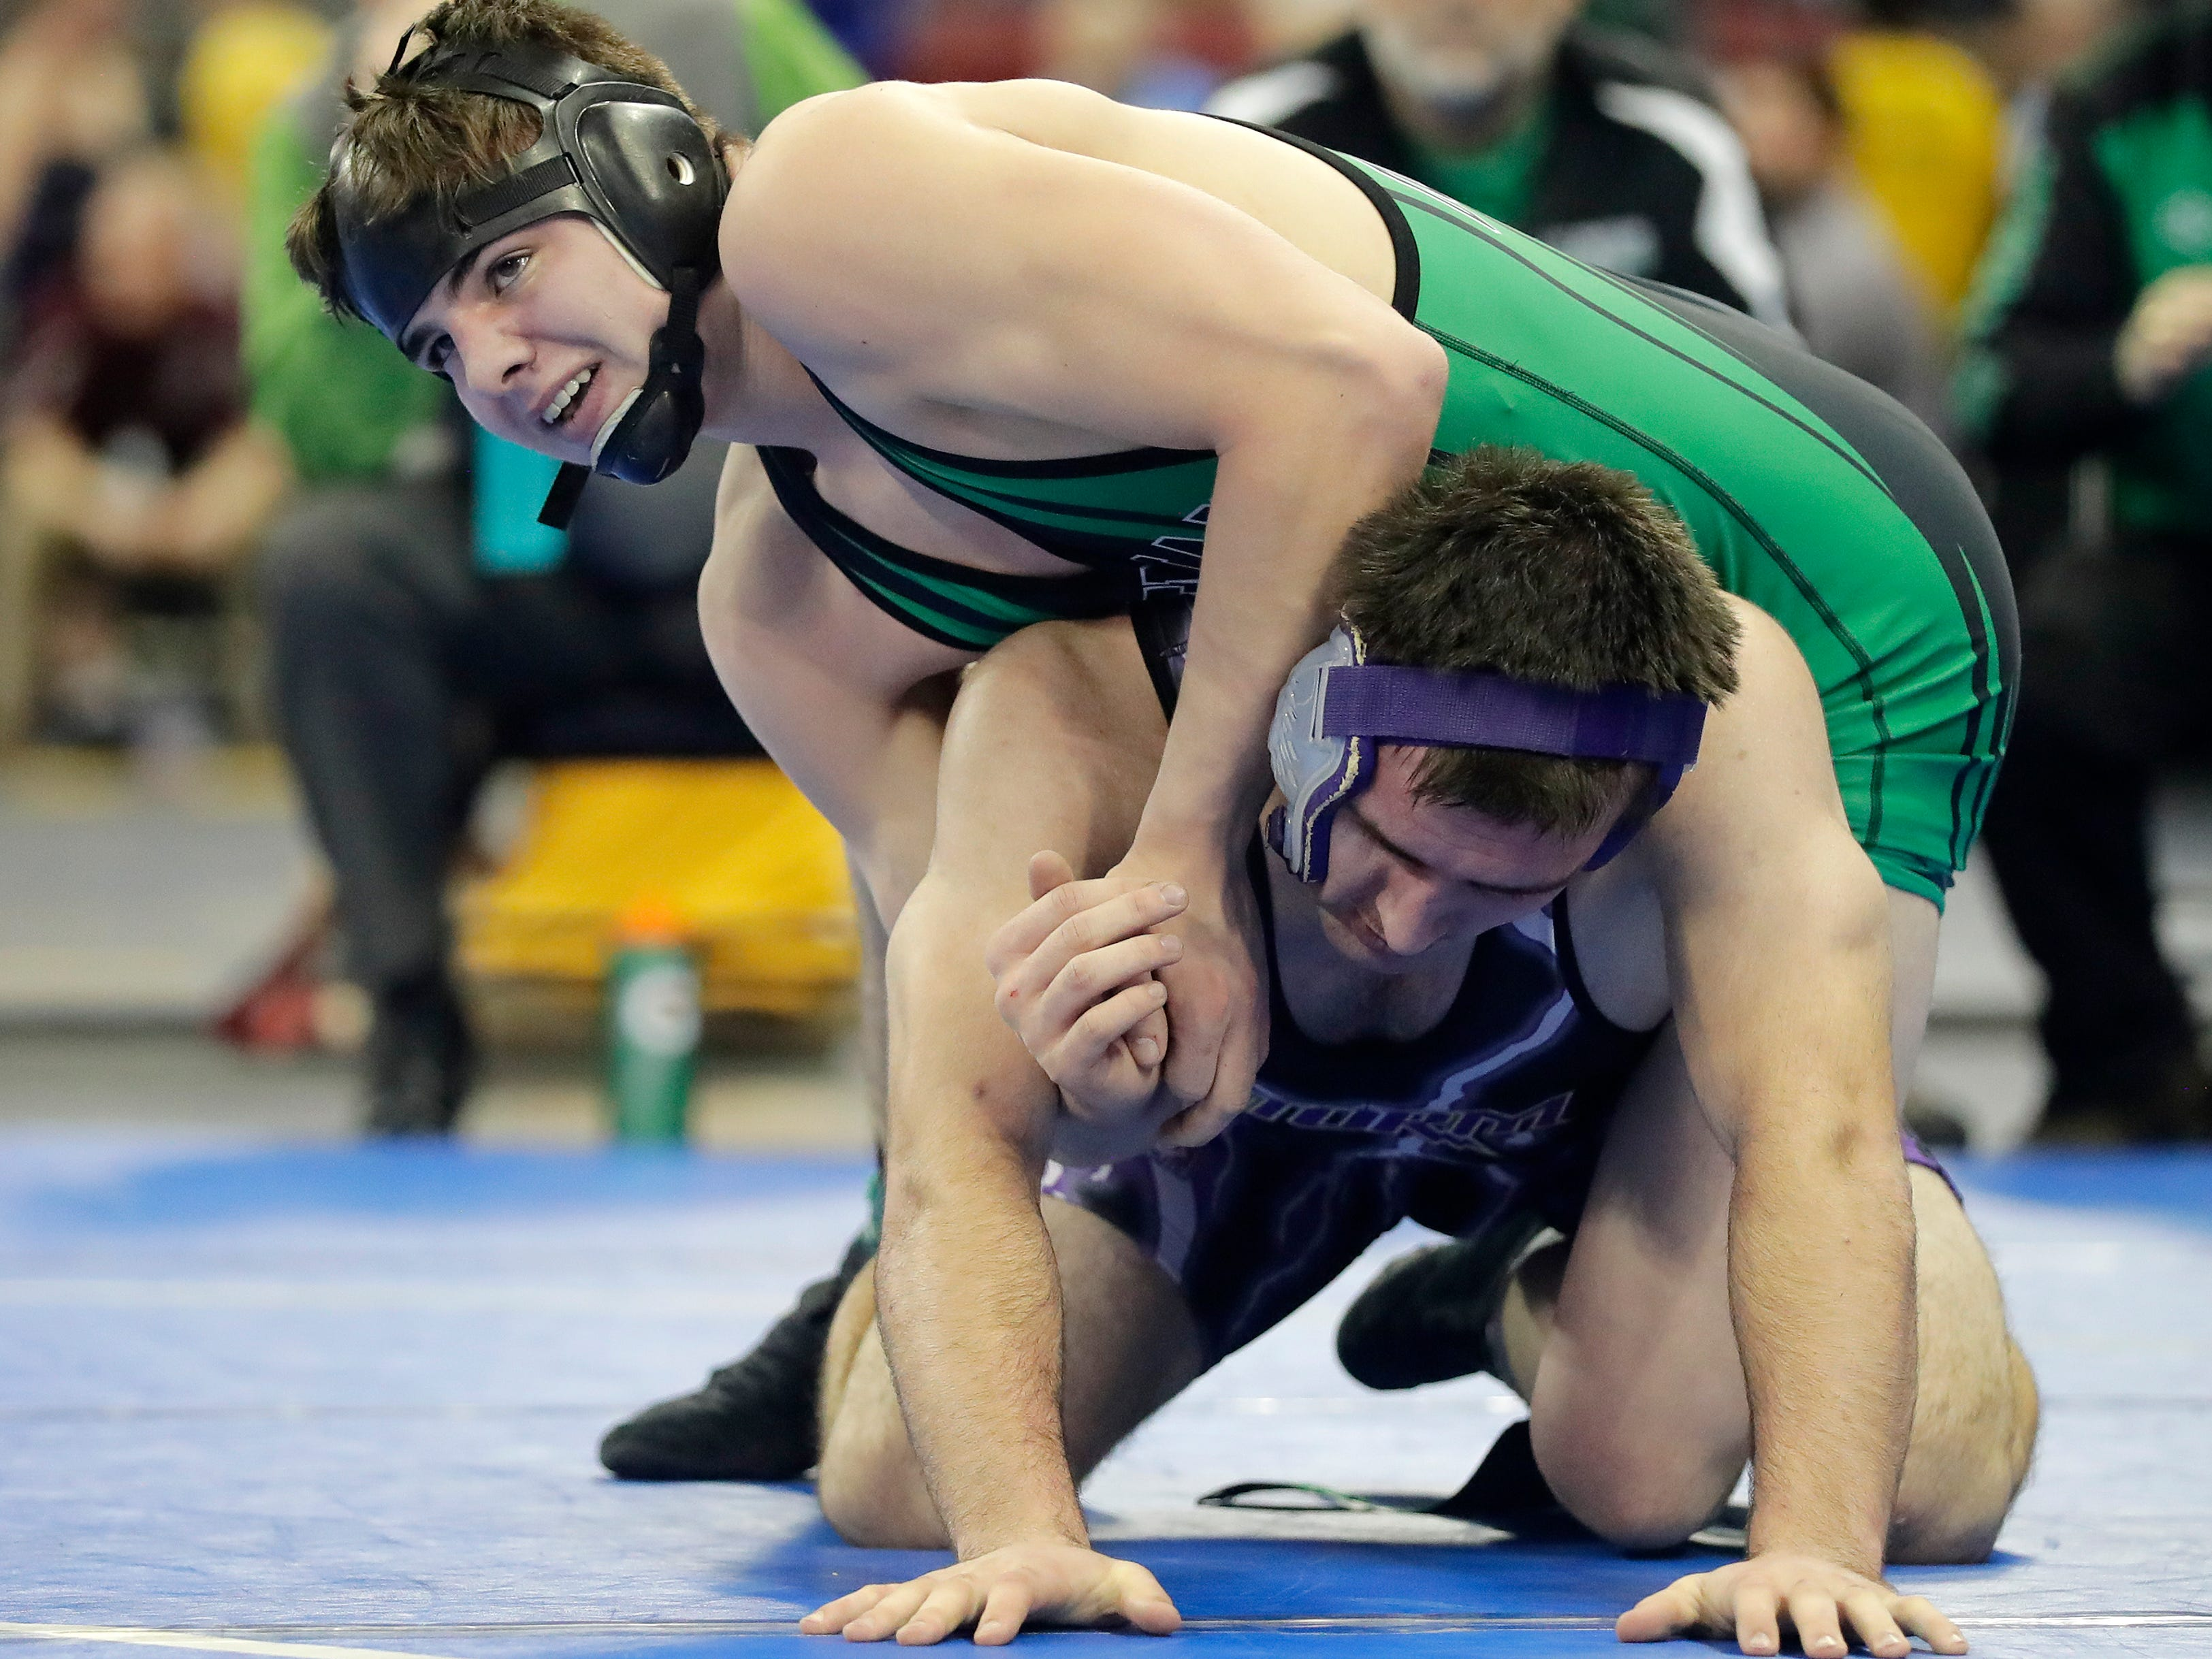 Coleman's Shamus McLain wrestles Kewaunee's Travis Reinke in a Division 3 170-pound preliminary match at the WIAA state individual wrestling tournament at the Kohl Center on Thursday, February 21, 2019 in Madison, Wis.